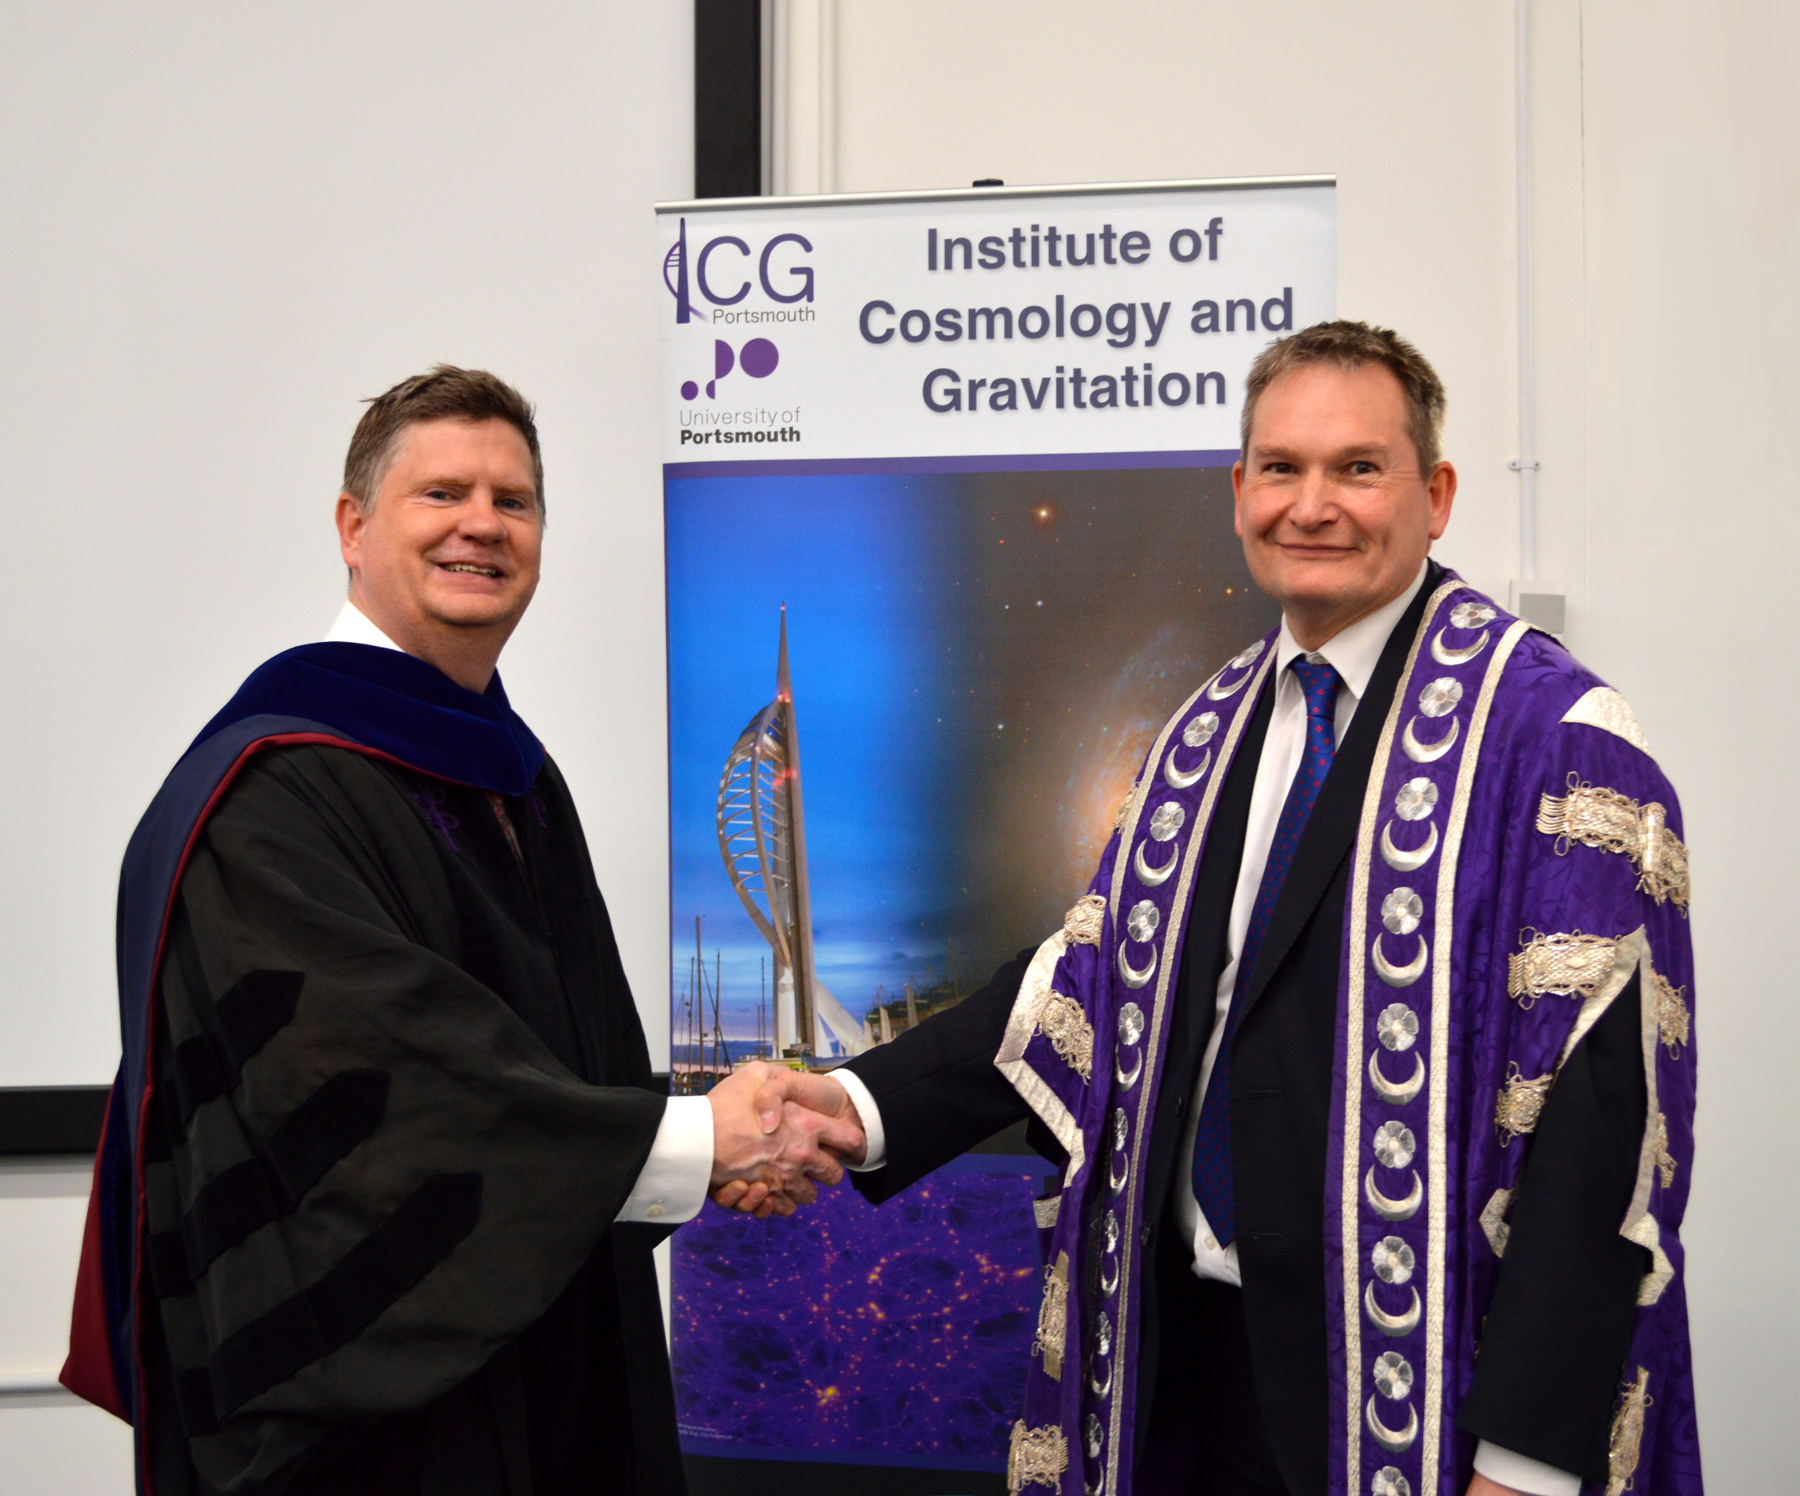 Professor Rob Crittenden with the University Vice-Chancellor, Professor Graham Galbraith